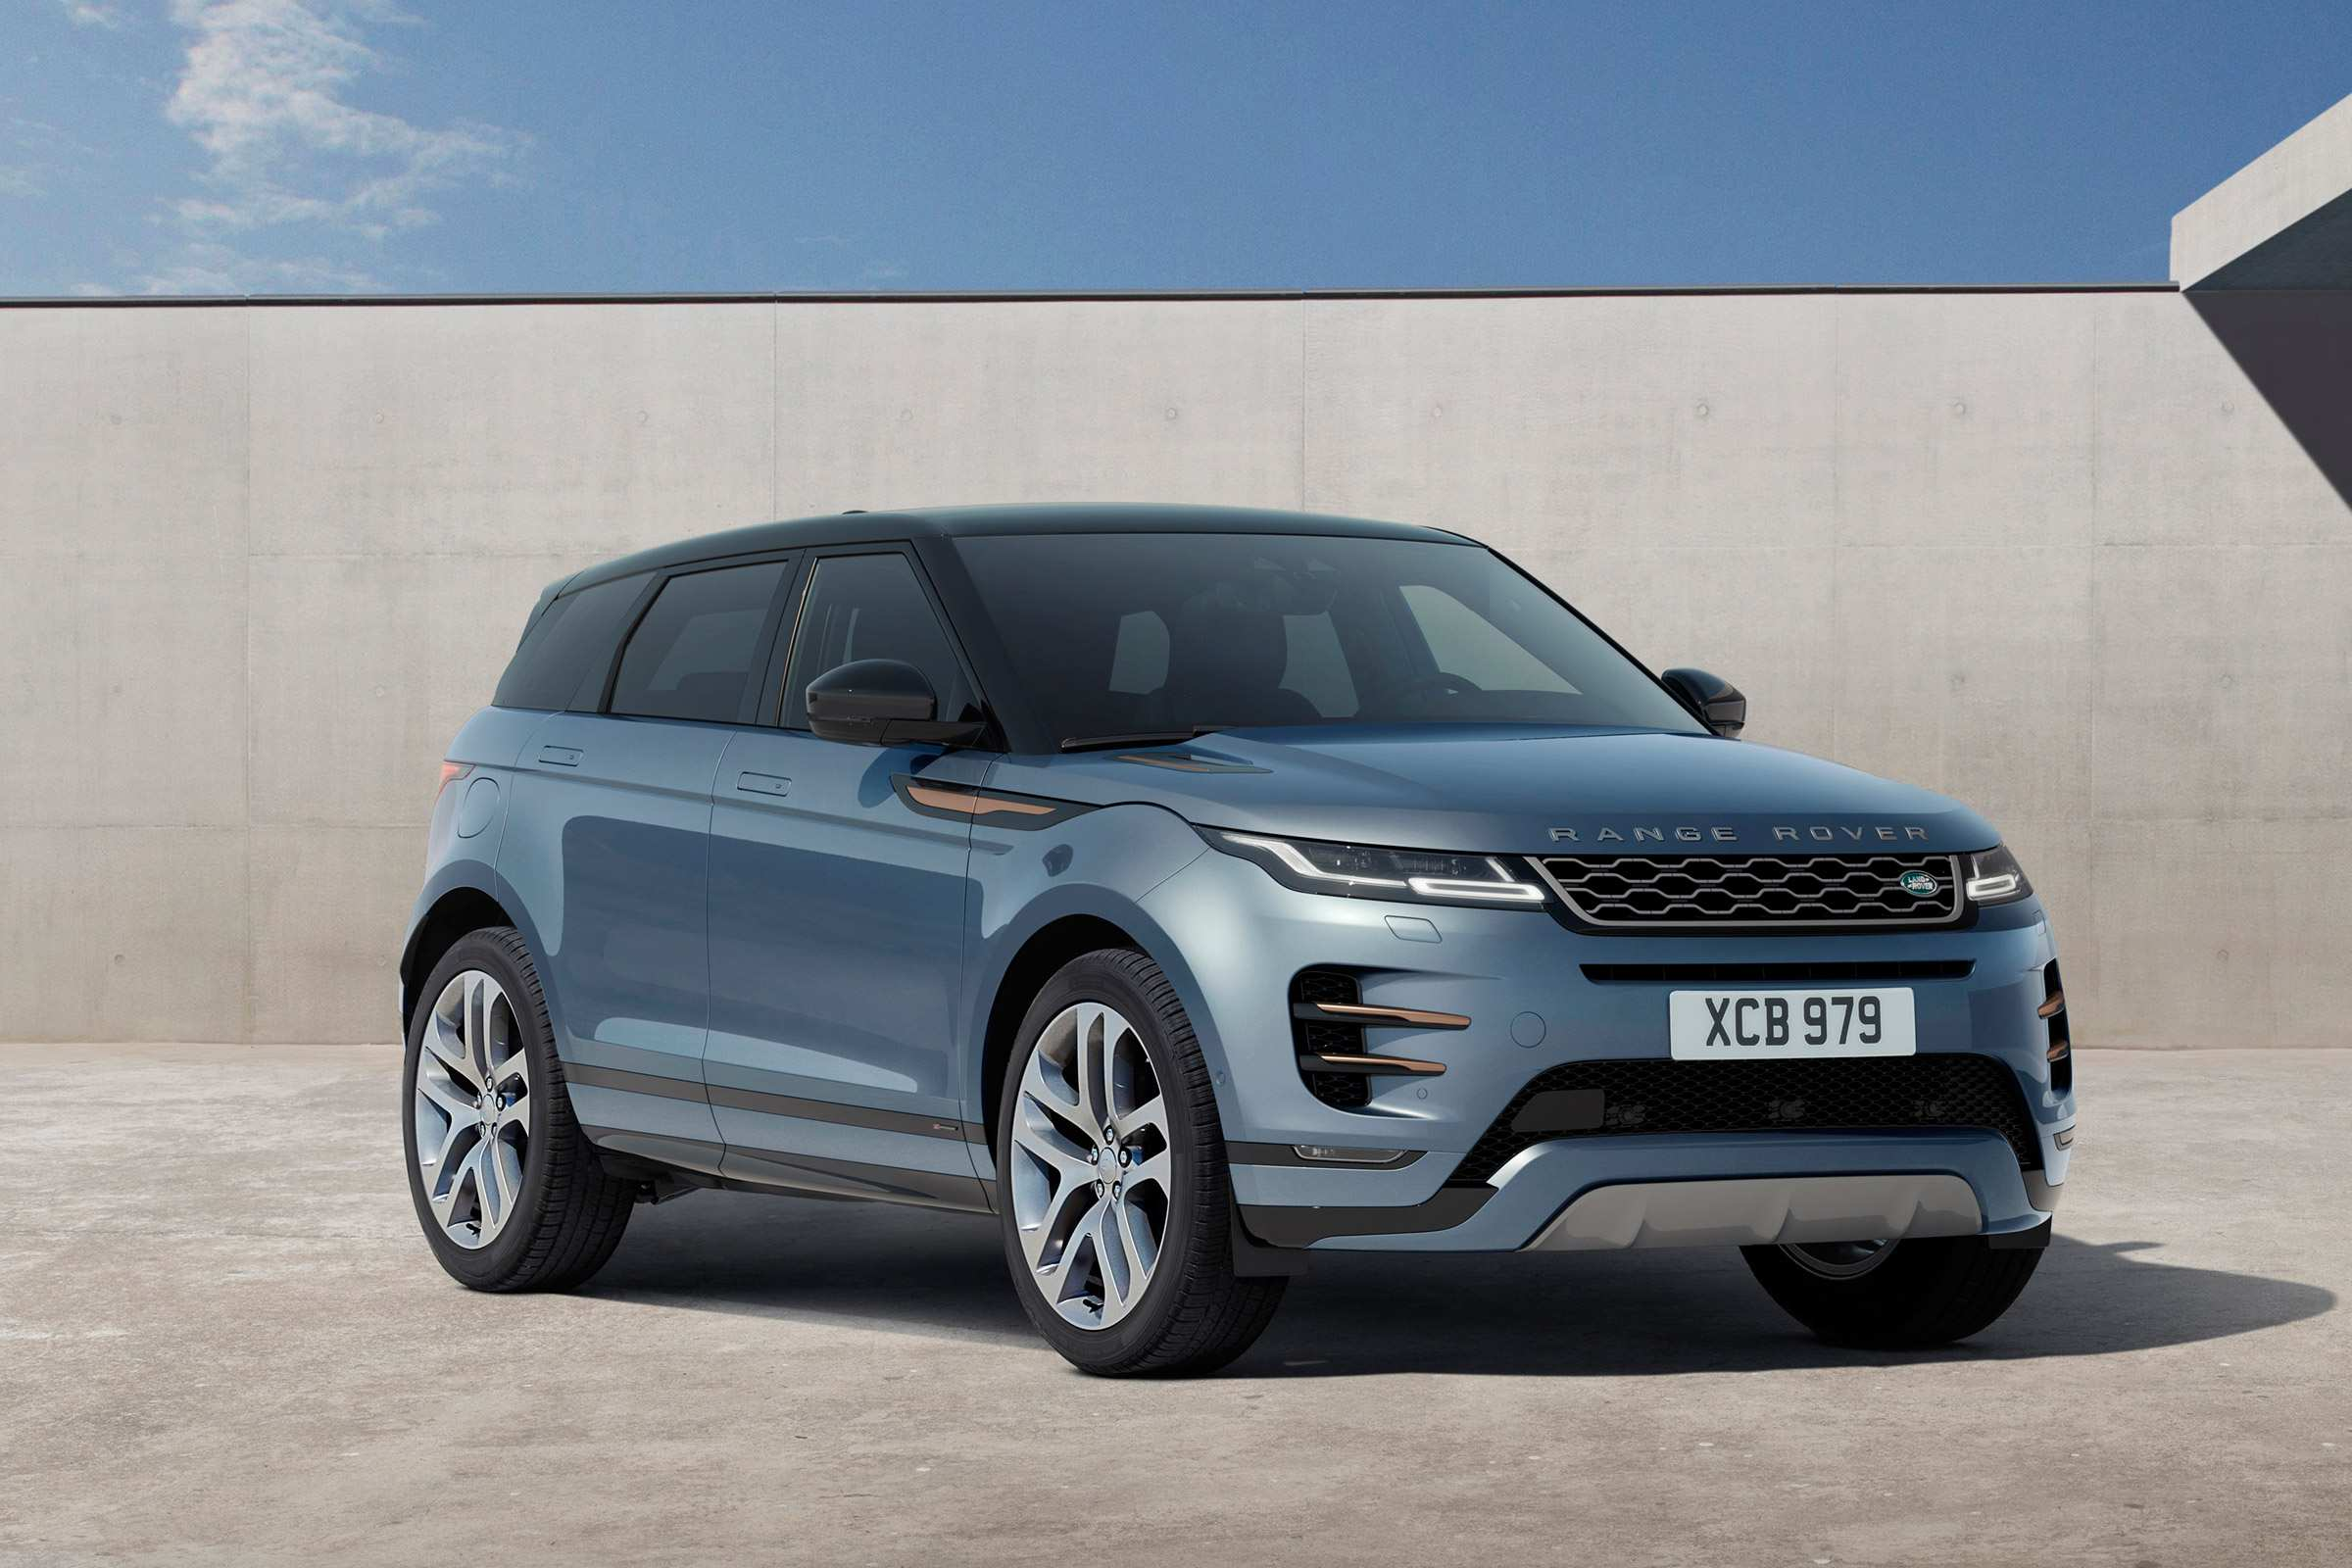 71 New 2020 Range Rover Evoque Xl Pictures